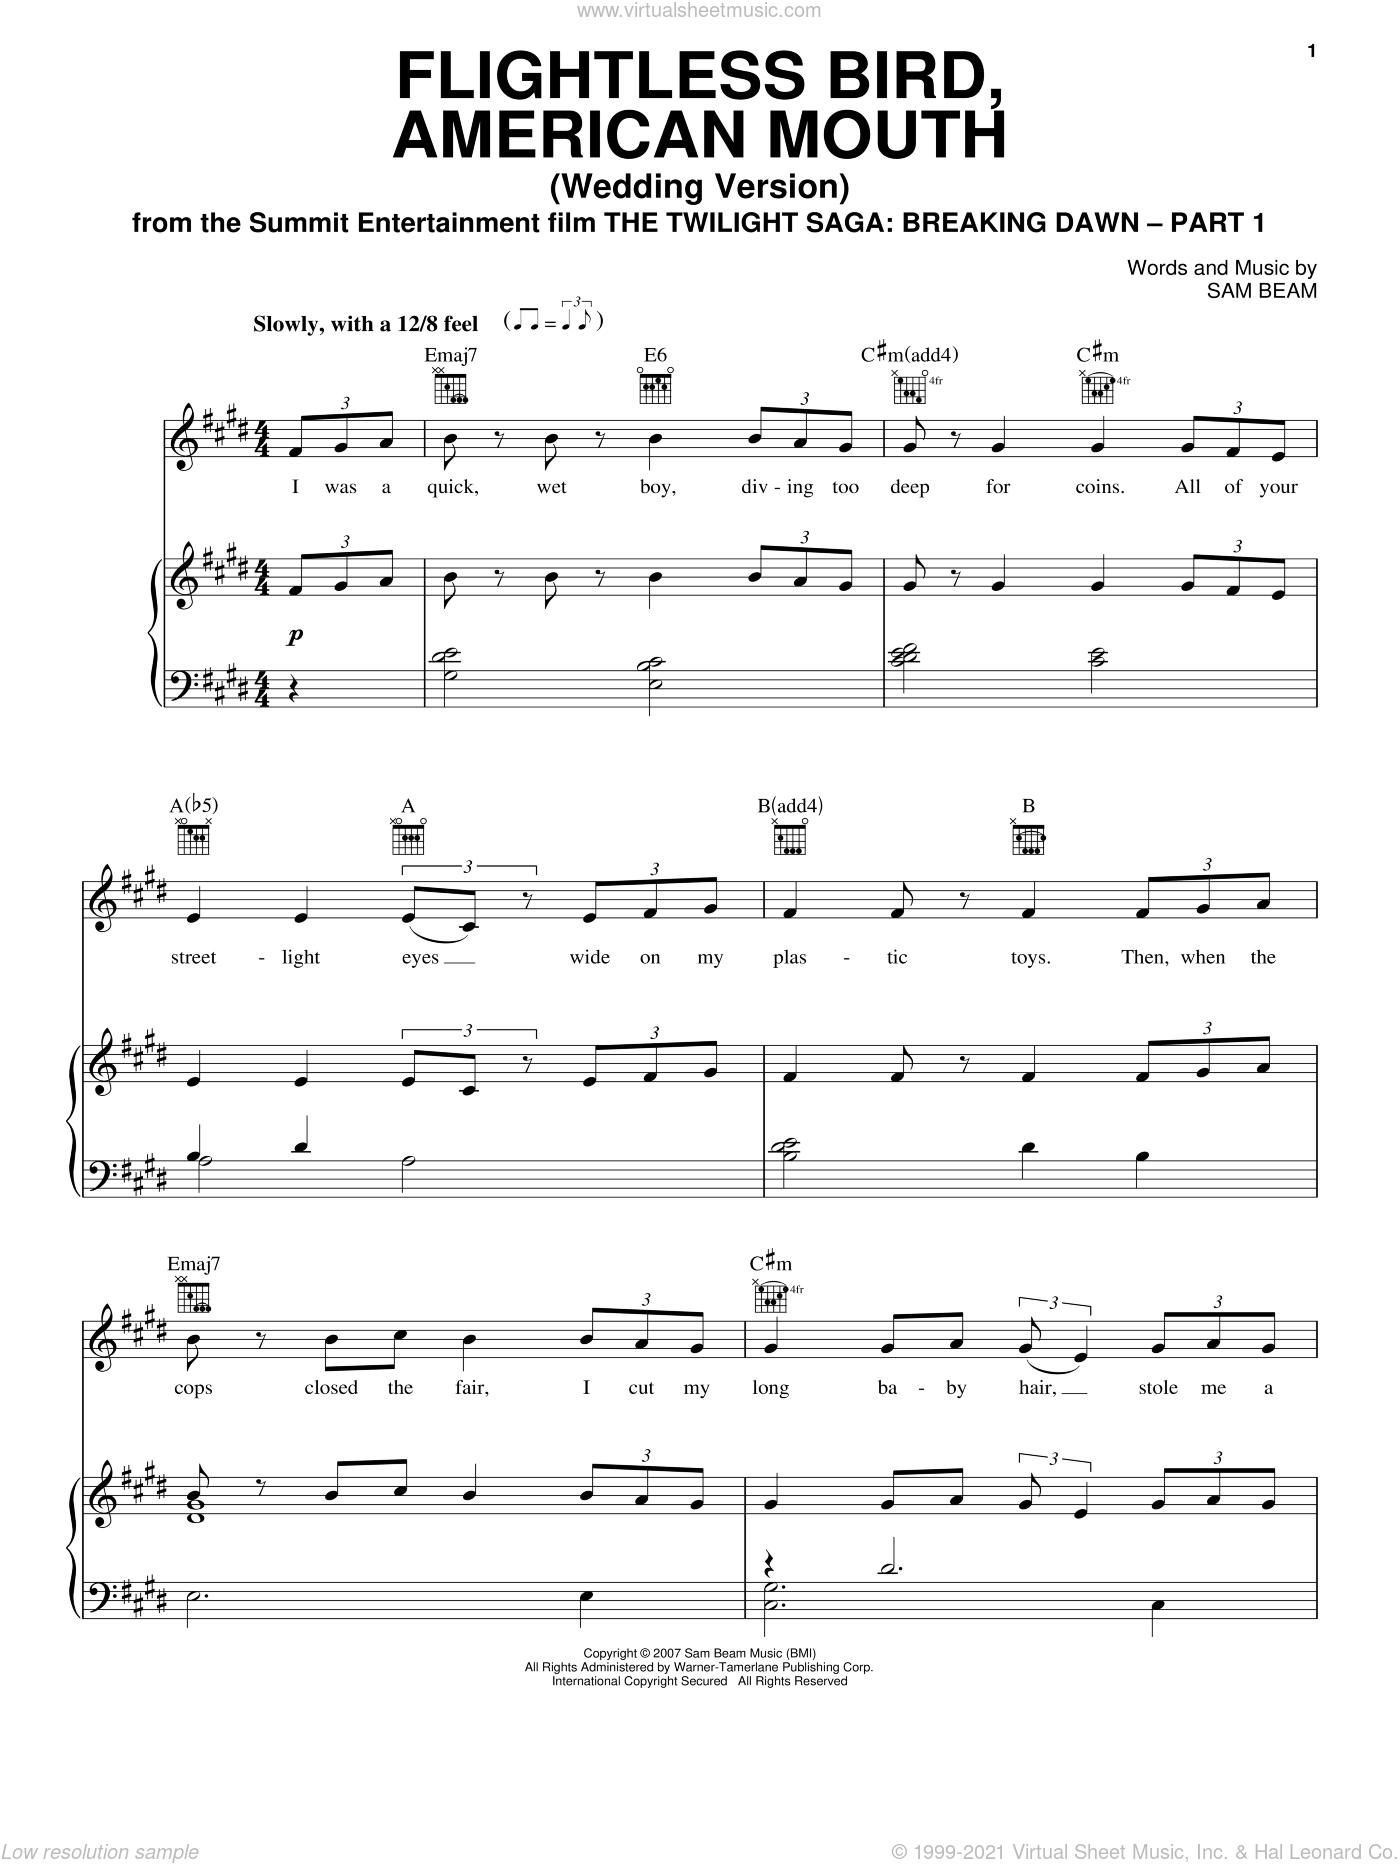 Flightless Bird, American Mouth (Wedding Version) sheet music for voice, piano or guitar by Twilight: Breaking Dawn (Movie)